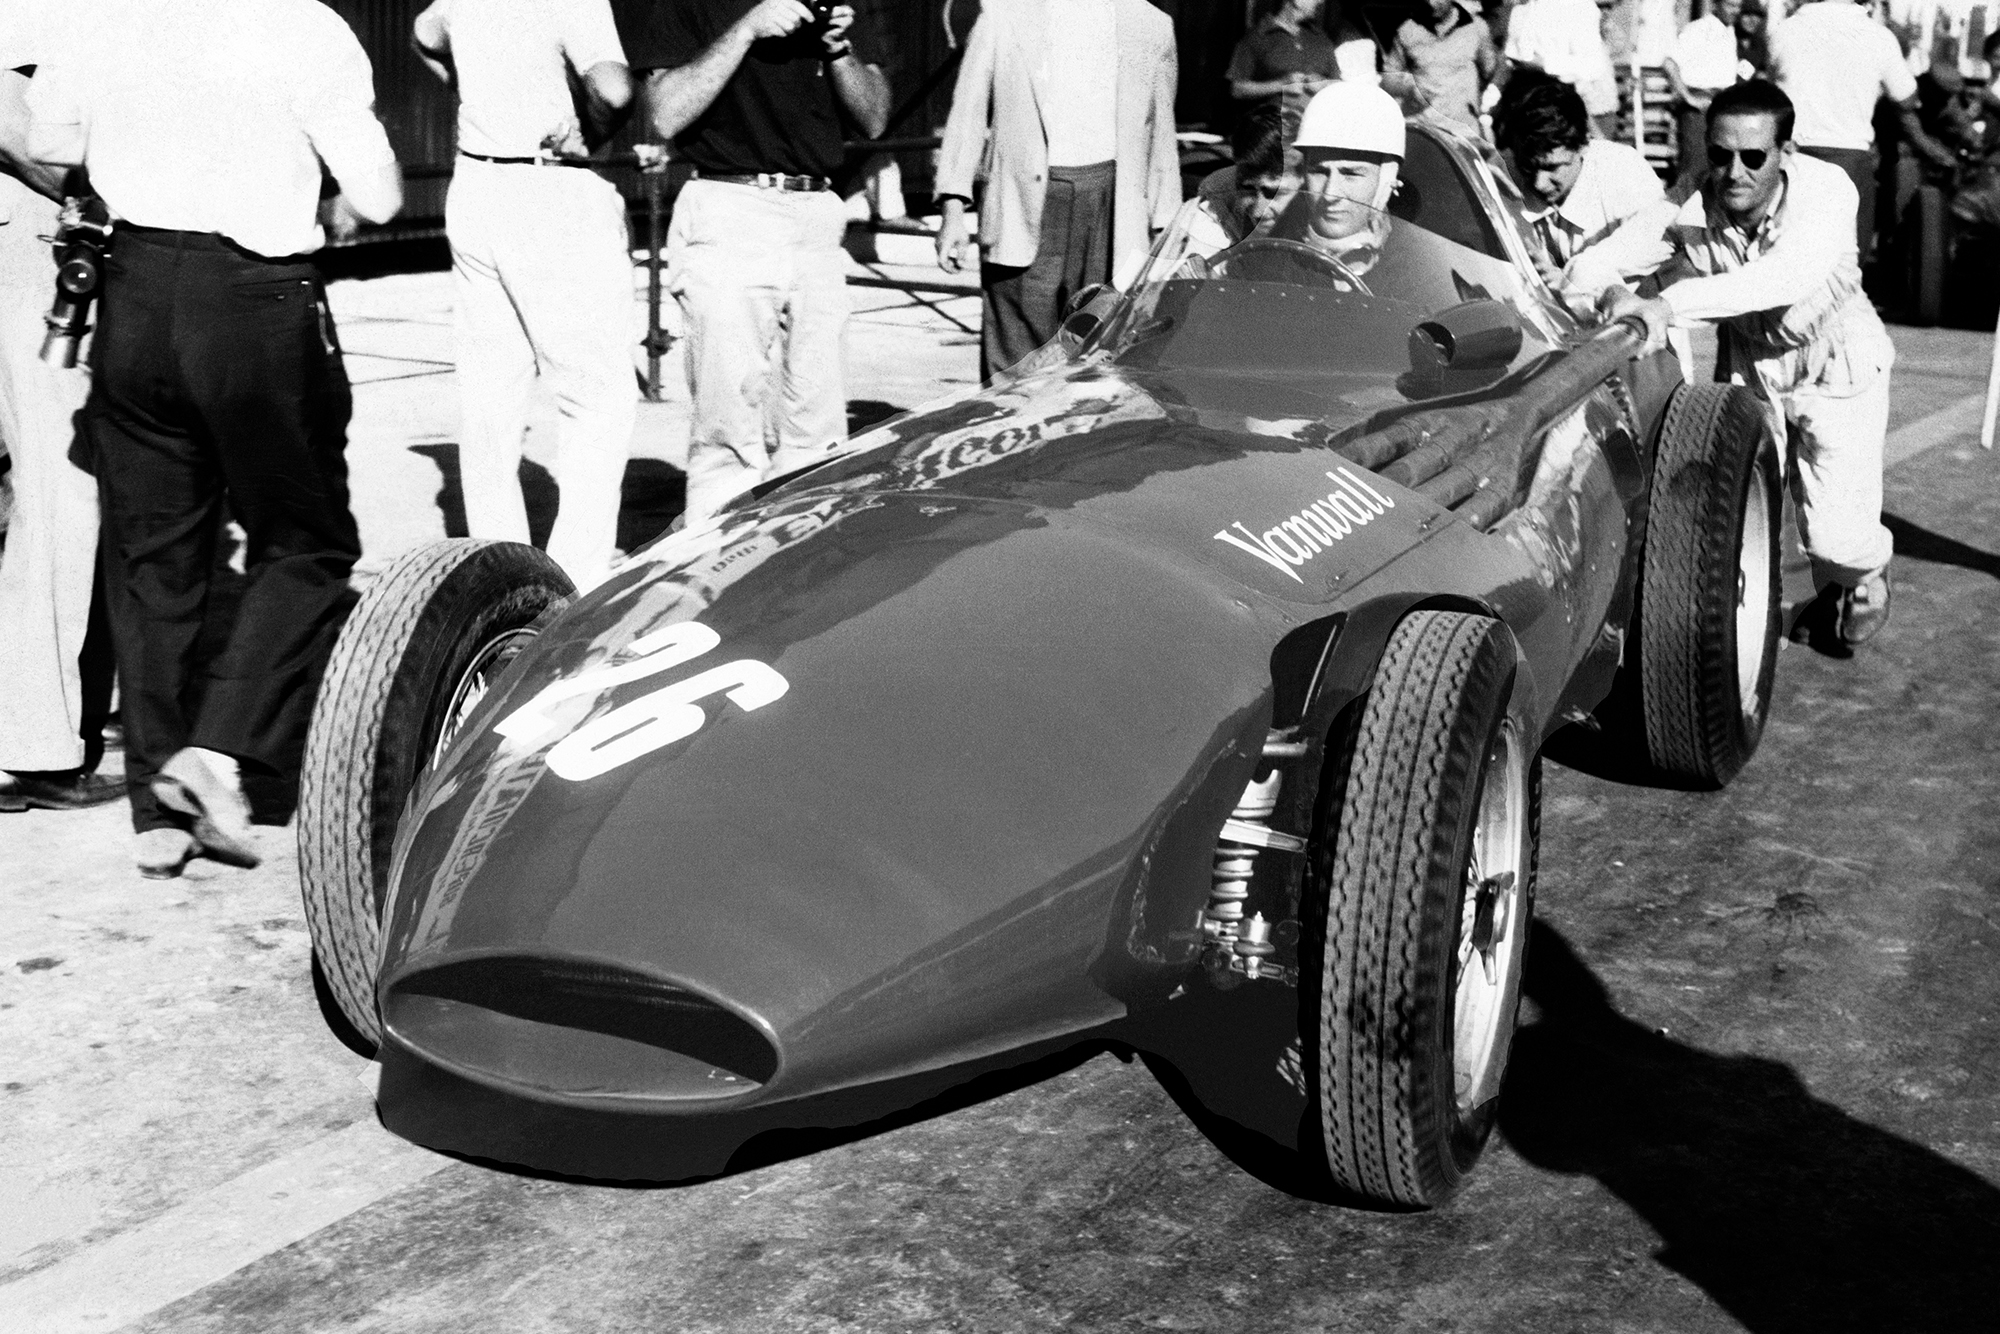 Stirling Moss's Vanwall is pushed out of the pits during the 1957 Pescara Grand Prix